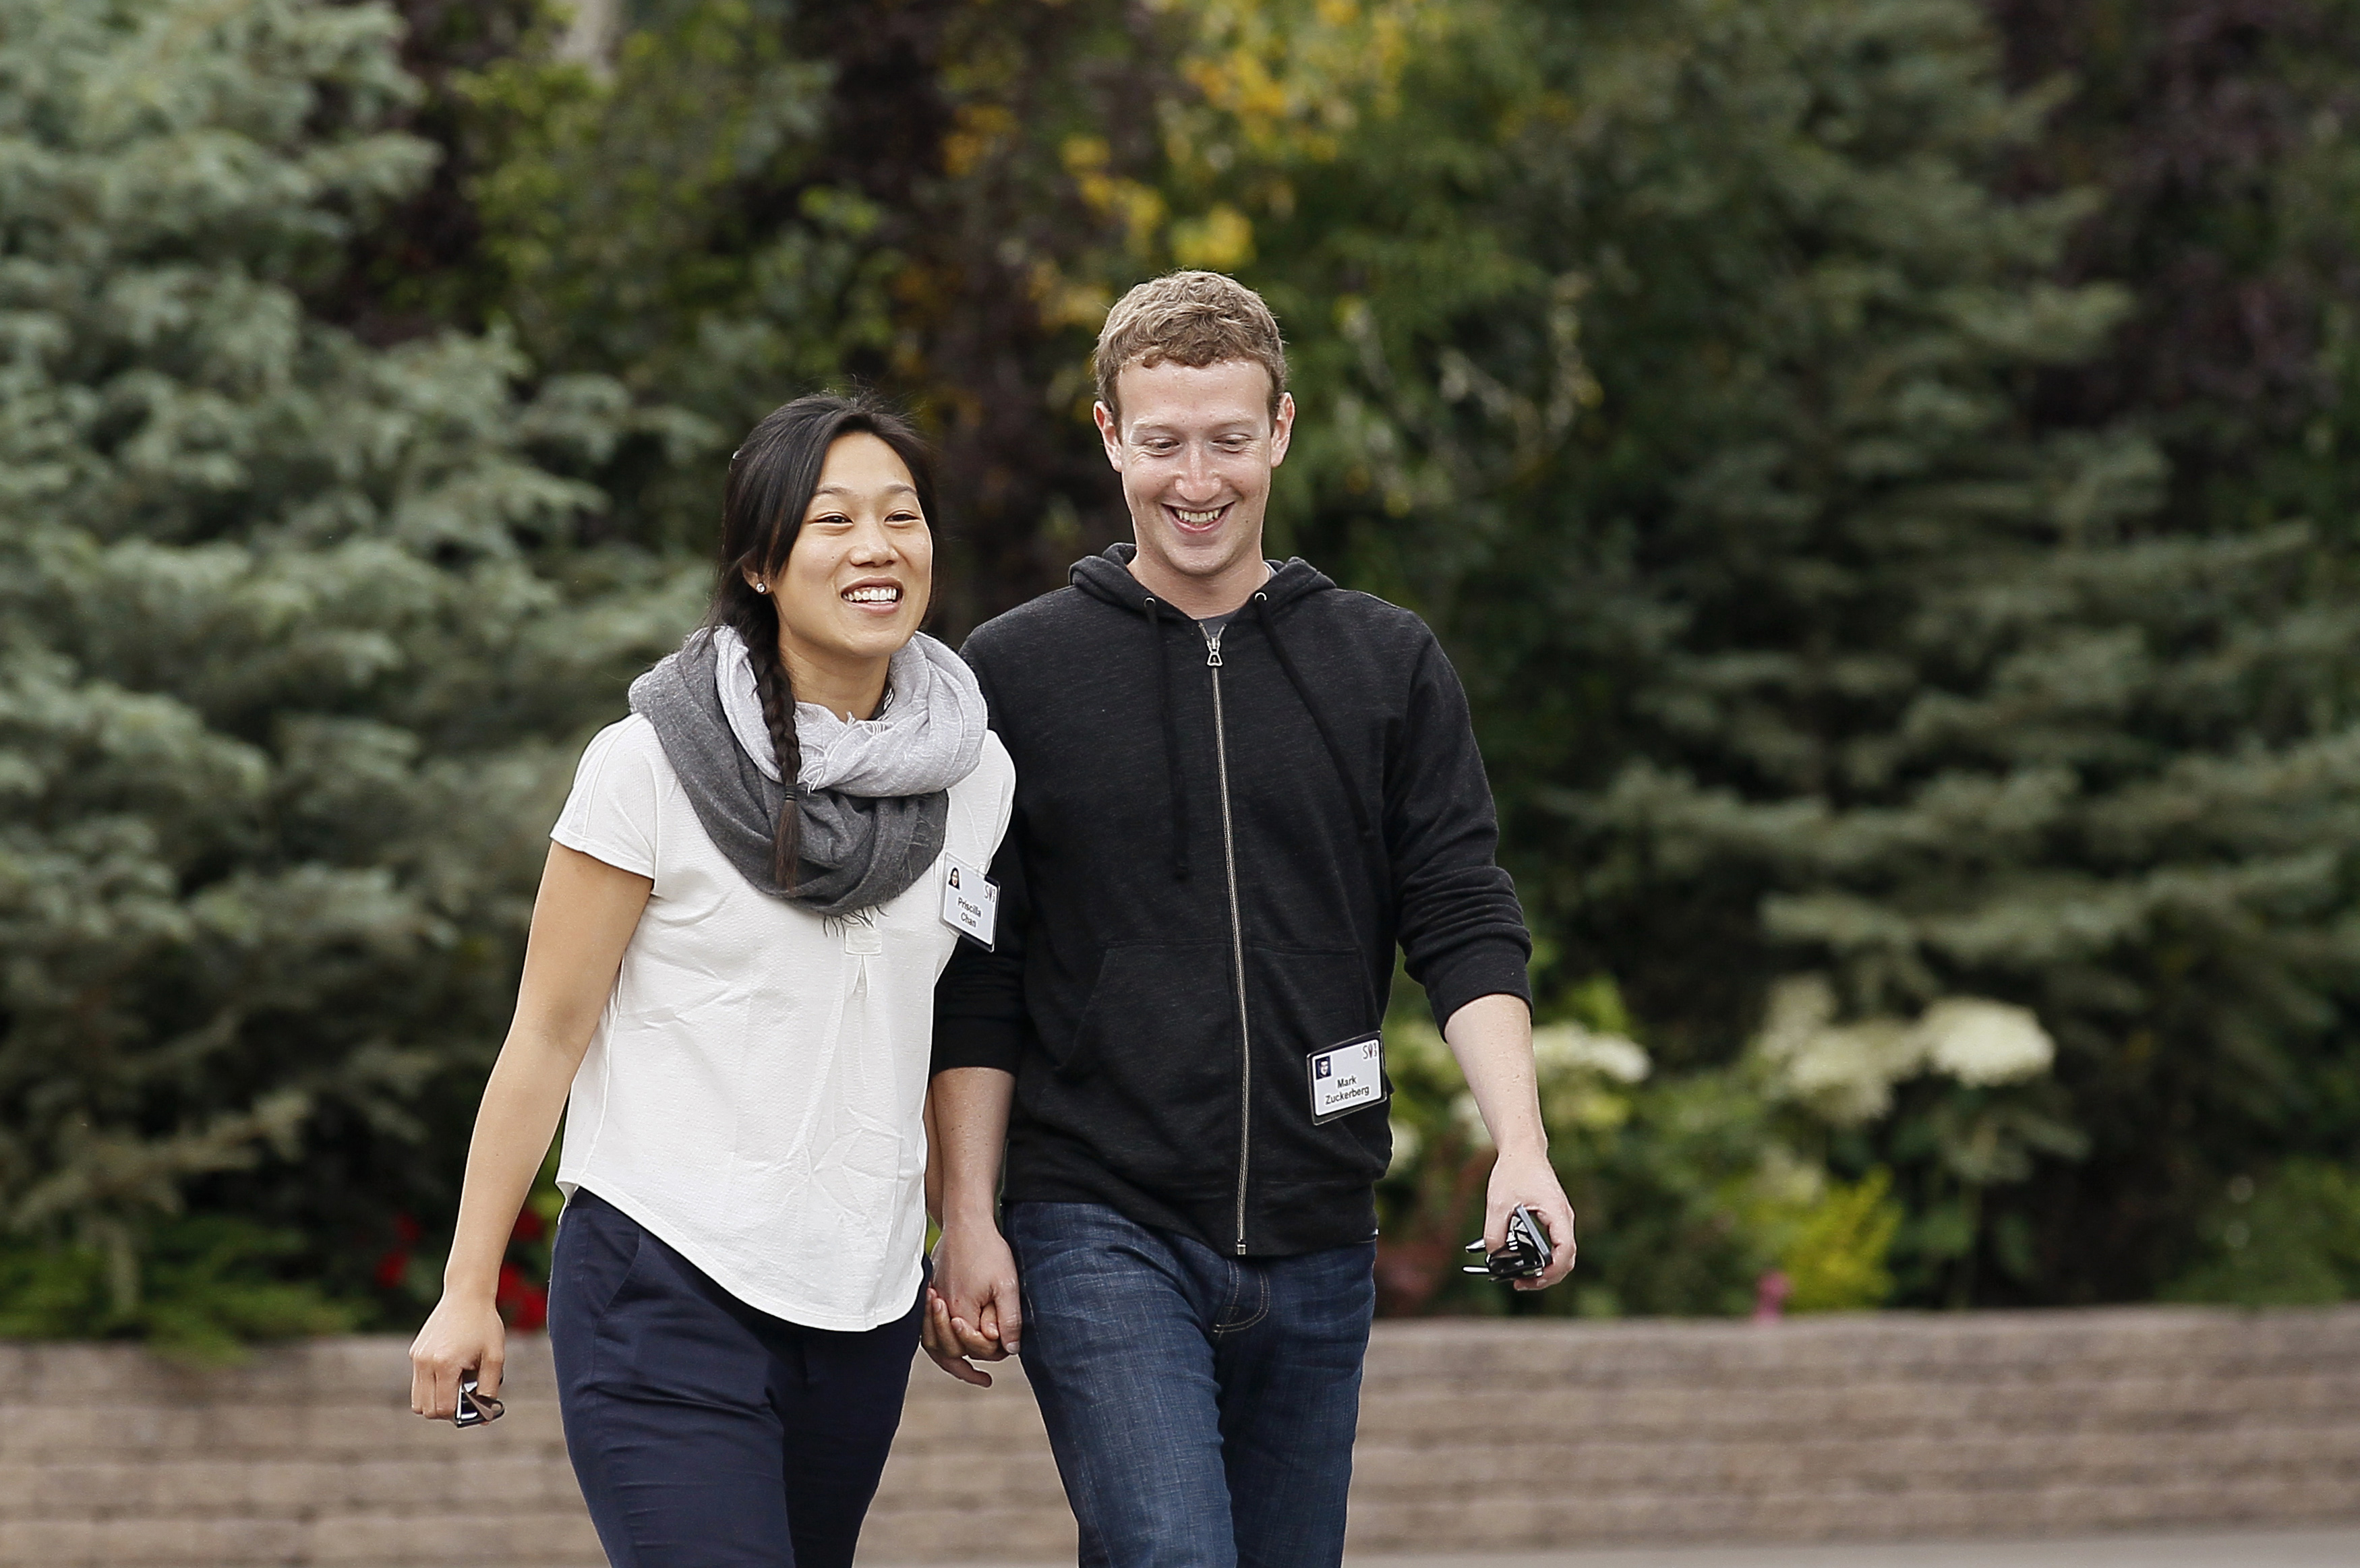 Facebook CEO Mark Zuckerberg walks with his wife Priscilla Chan at the annual Allen and Co. conference at the Sun Valley, Idaho Resort on July 11, 2013.